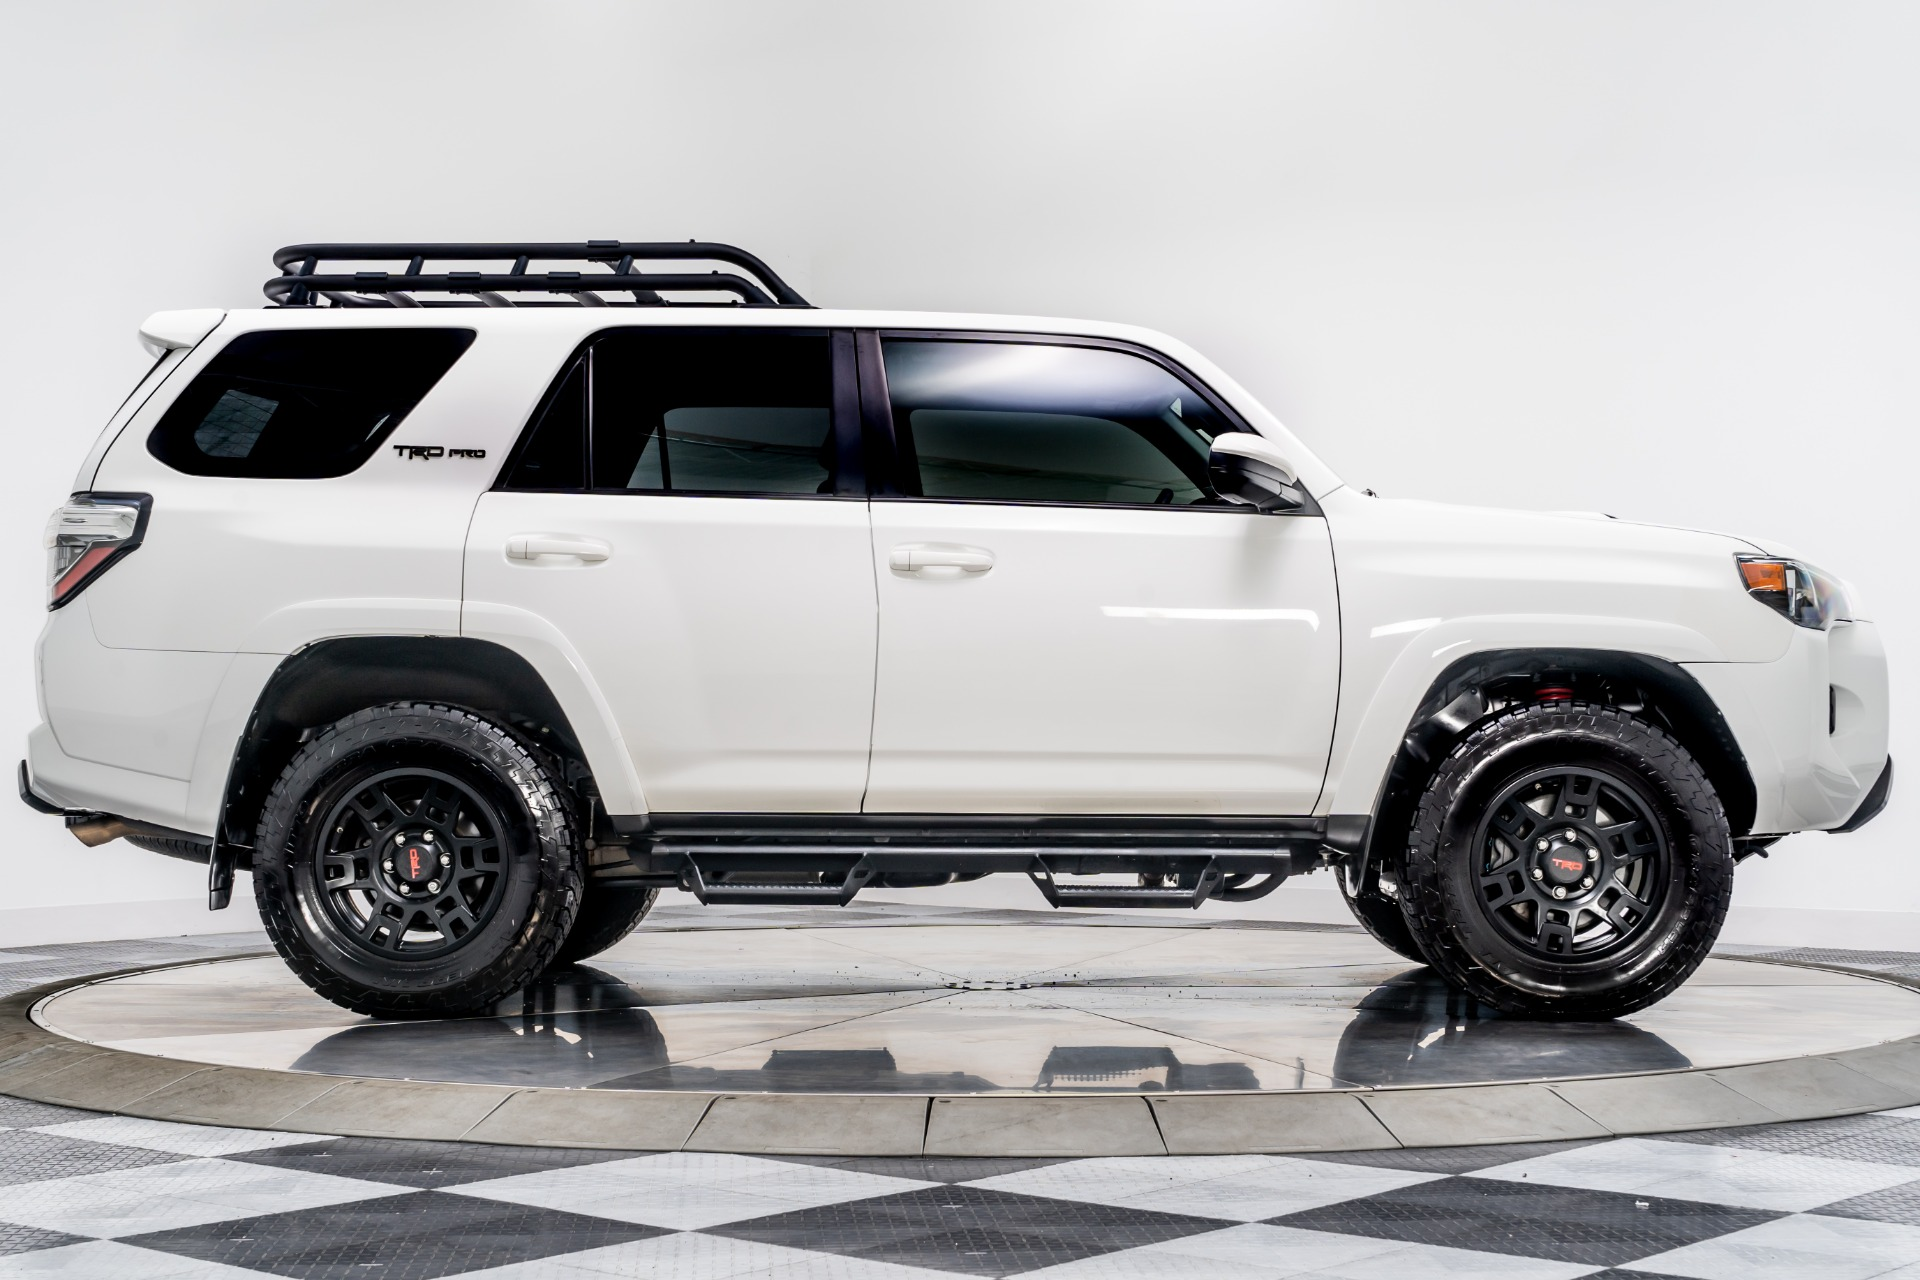 Used 2019 Toyota 4runner Trd Pro For Sale Sold Marshall Goldman Beverly Hills Stock W21374